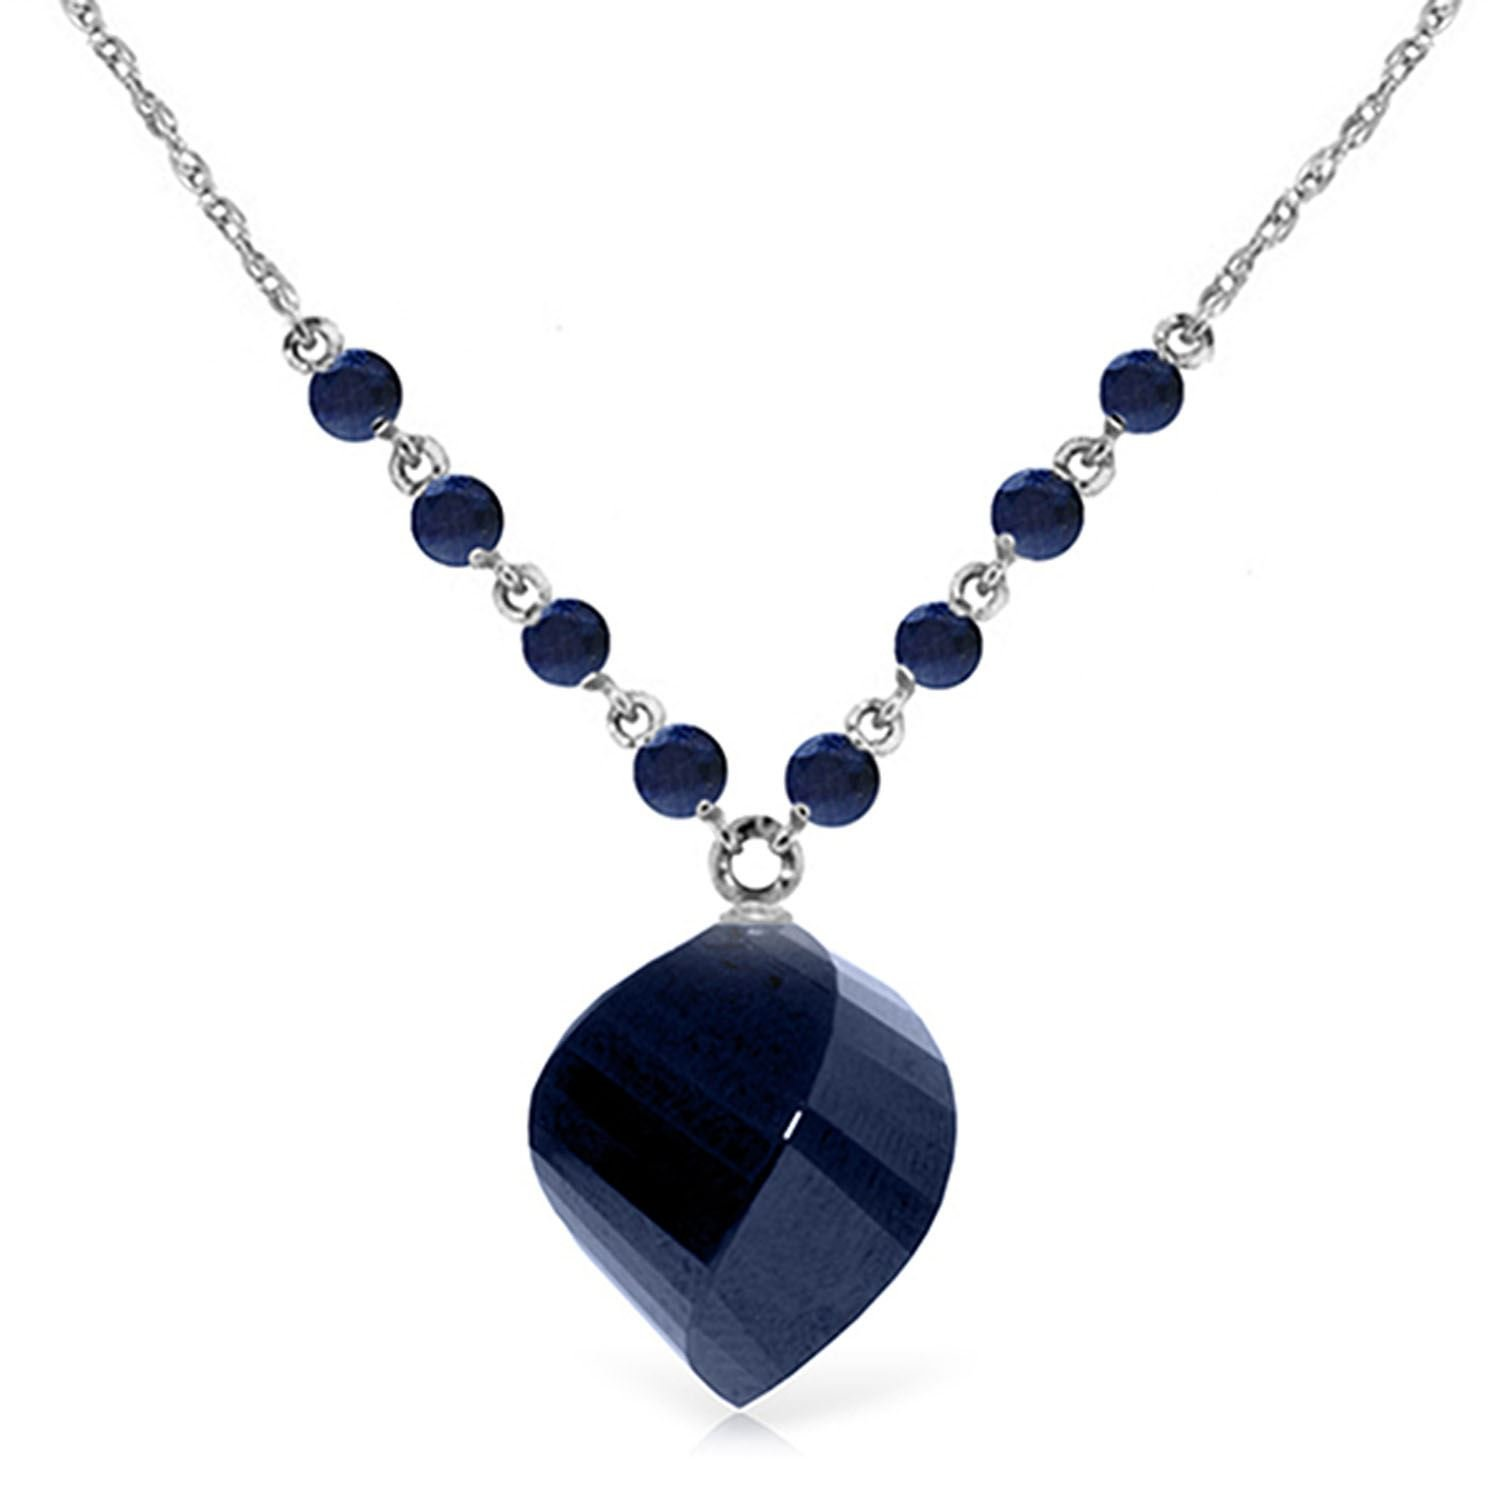 ALARRI 16.25 Carat 14K Solid White Gold Love The Hunt Sapphire Necklace with 24 Inch Chain Length